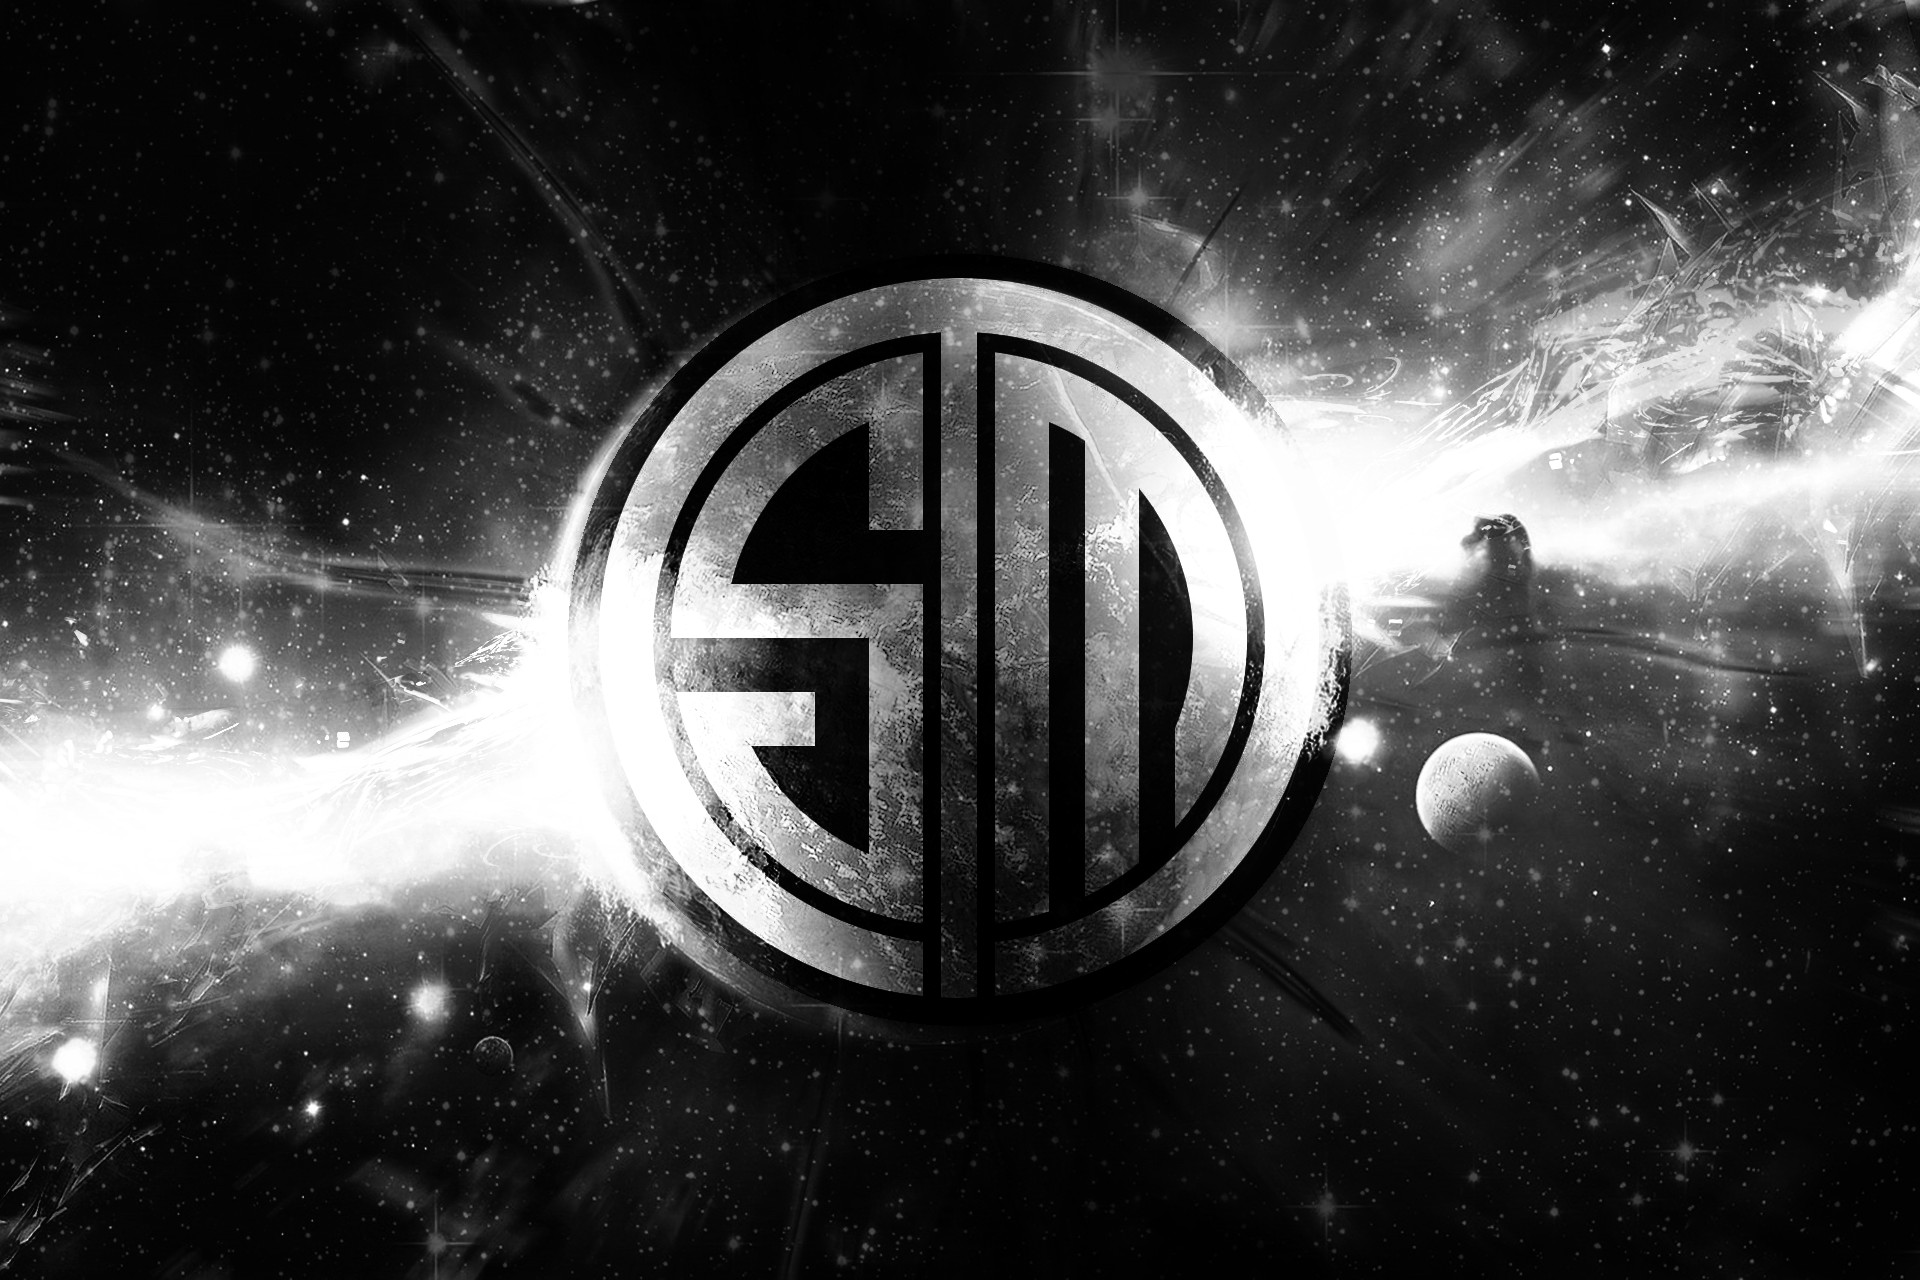 Fnatic Wallpaper Iphone Tsm Wallpaper 183 ① Download Free Awesome Full Hd Wallpapers